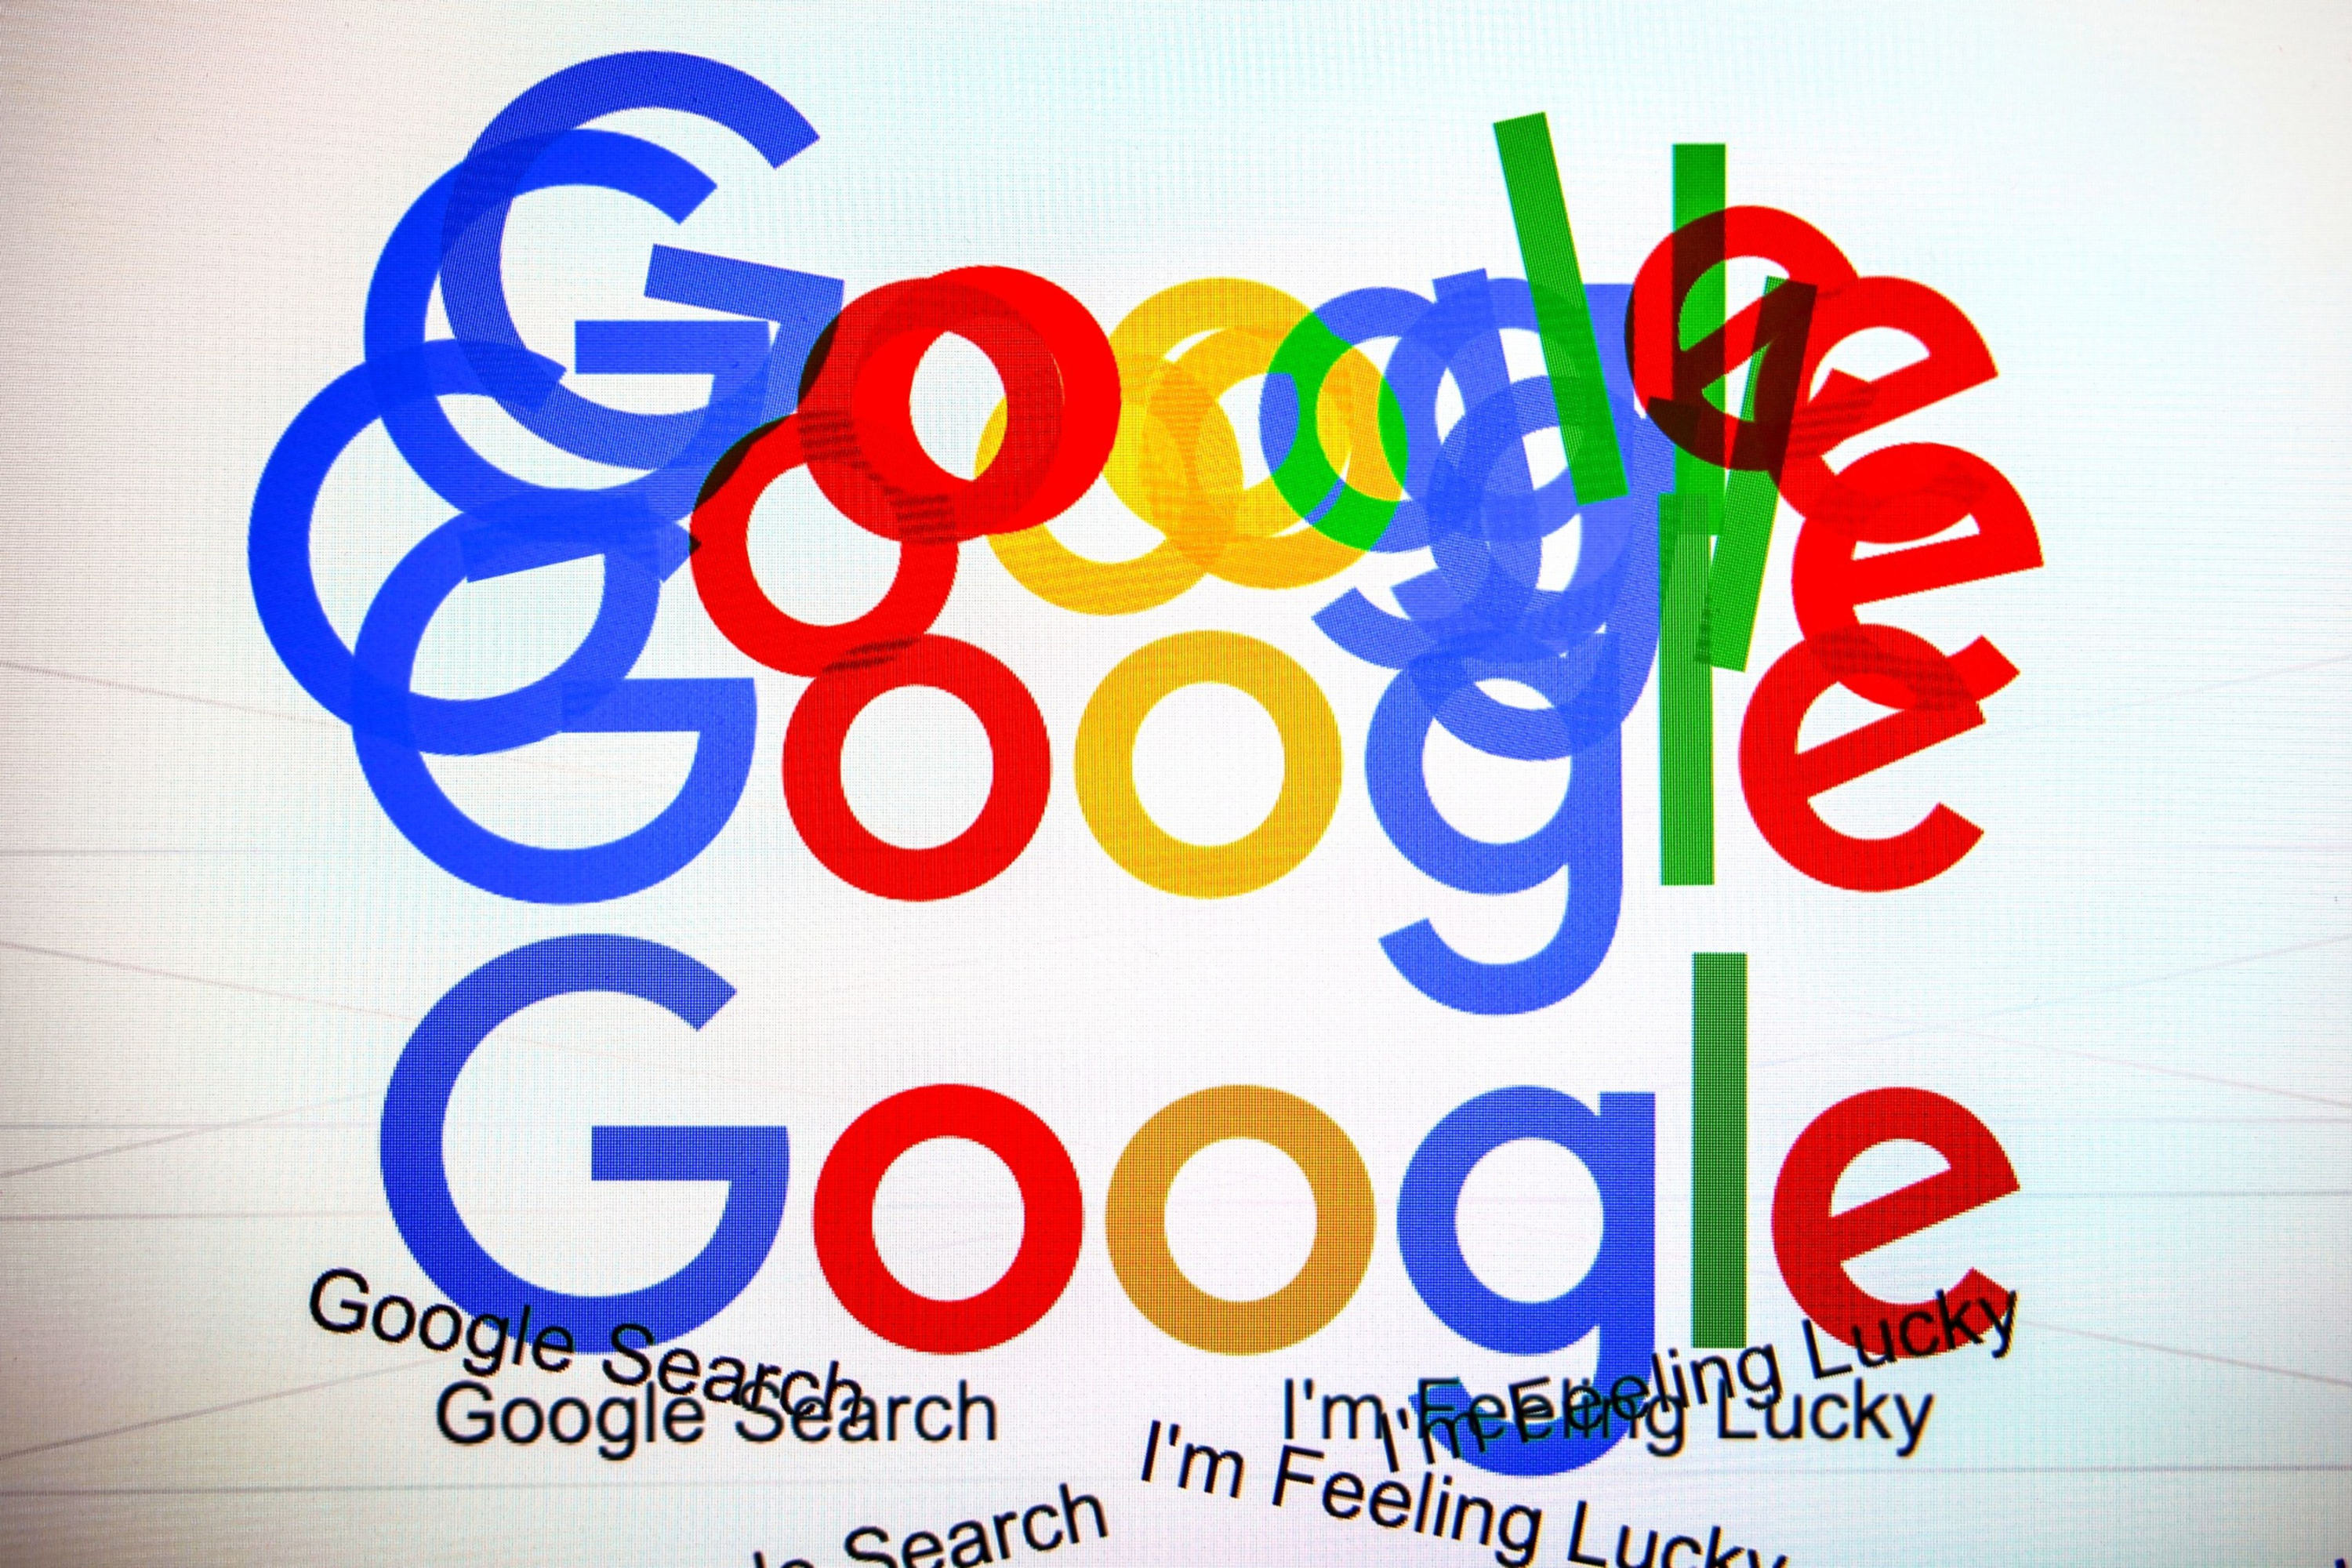 The industry reacts to Google's tracking rebuff and a suit brand runs an orgy-themed campaign sans masks and very little suits: Friday Wake-Up Call